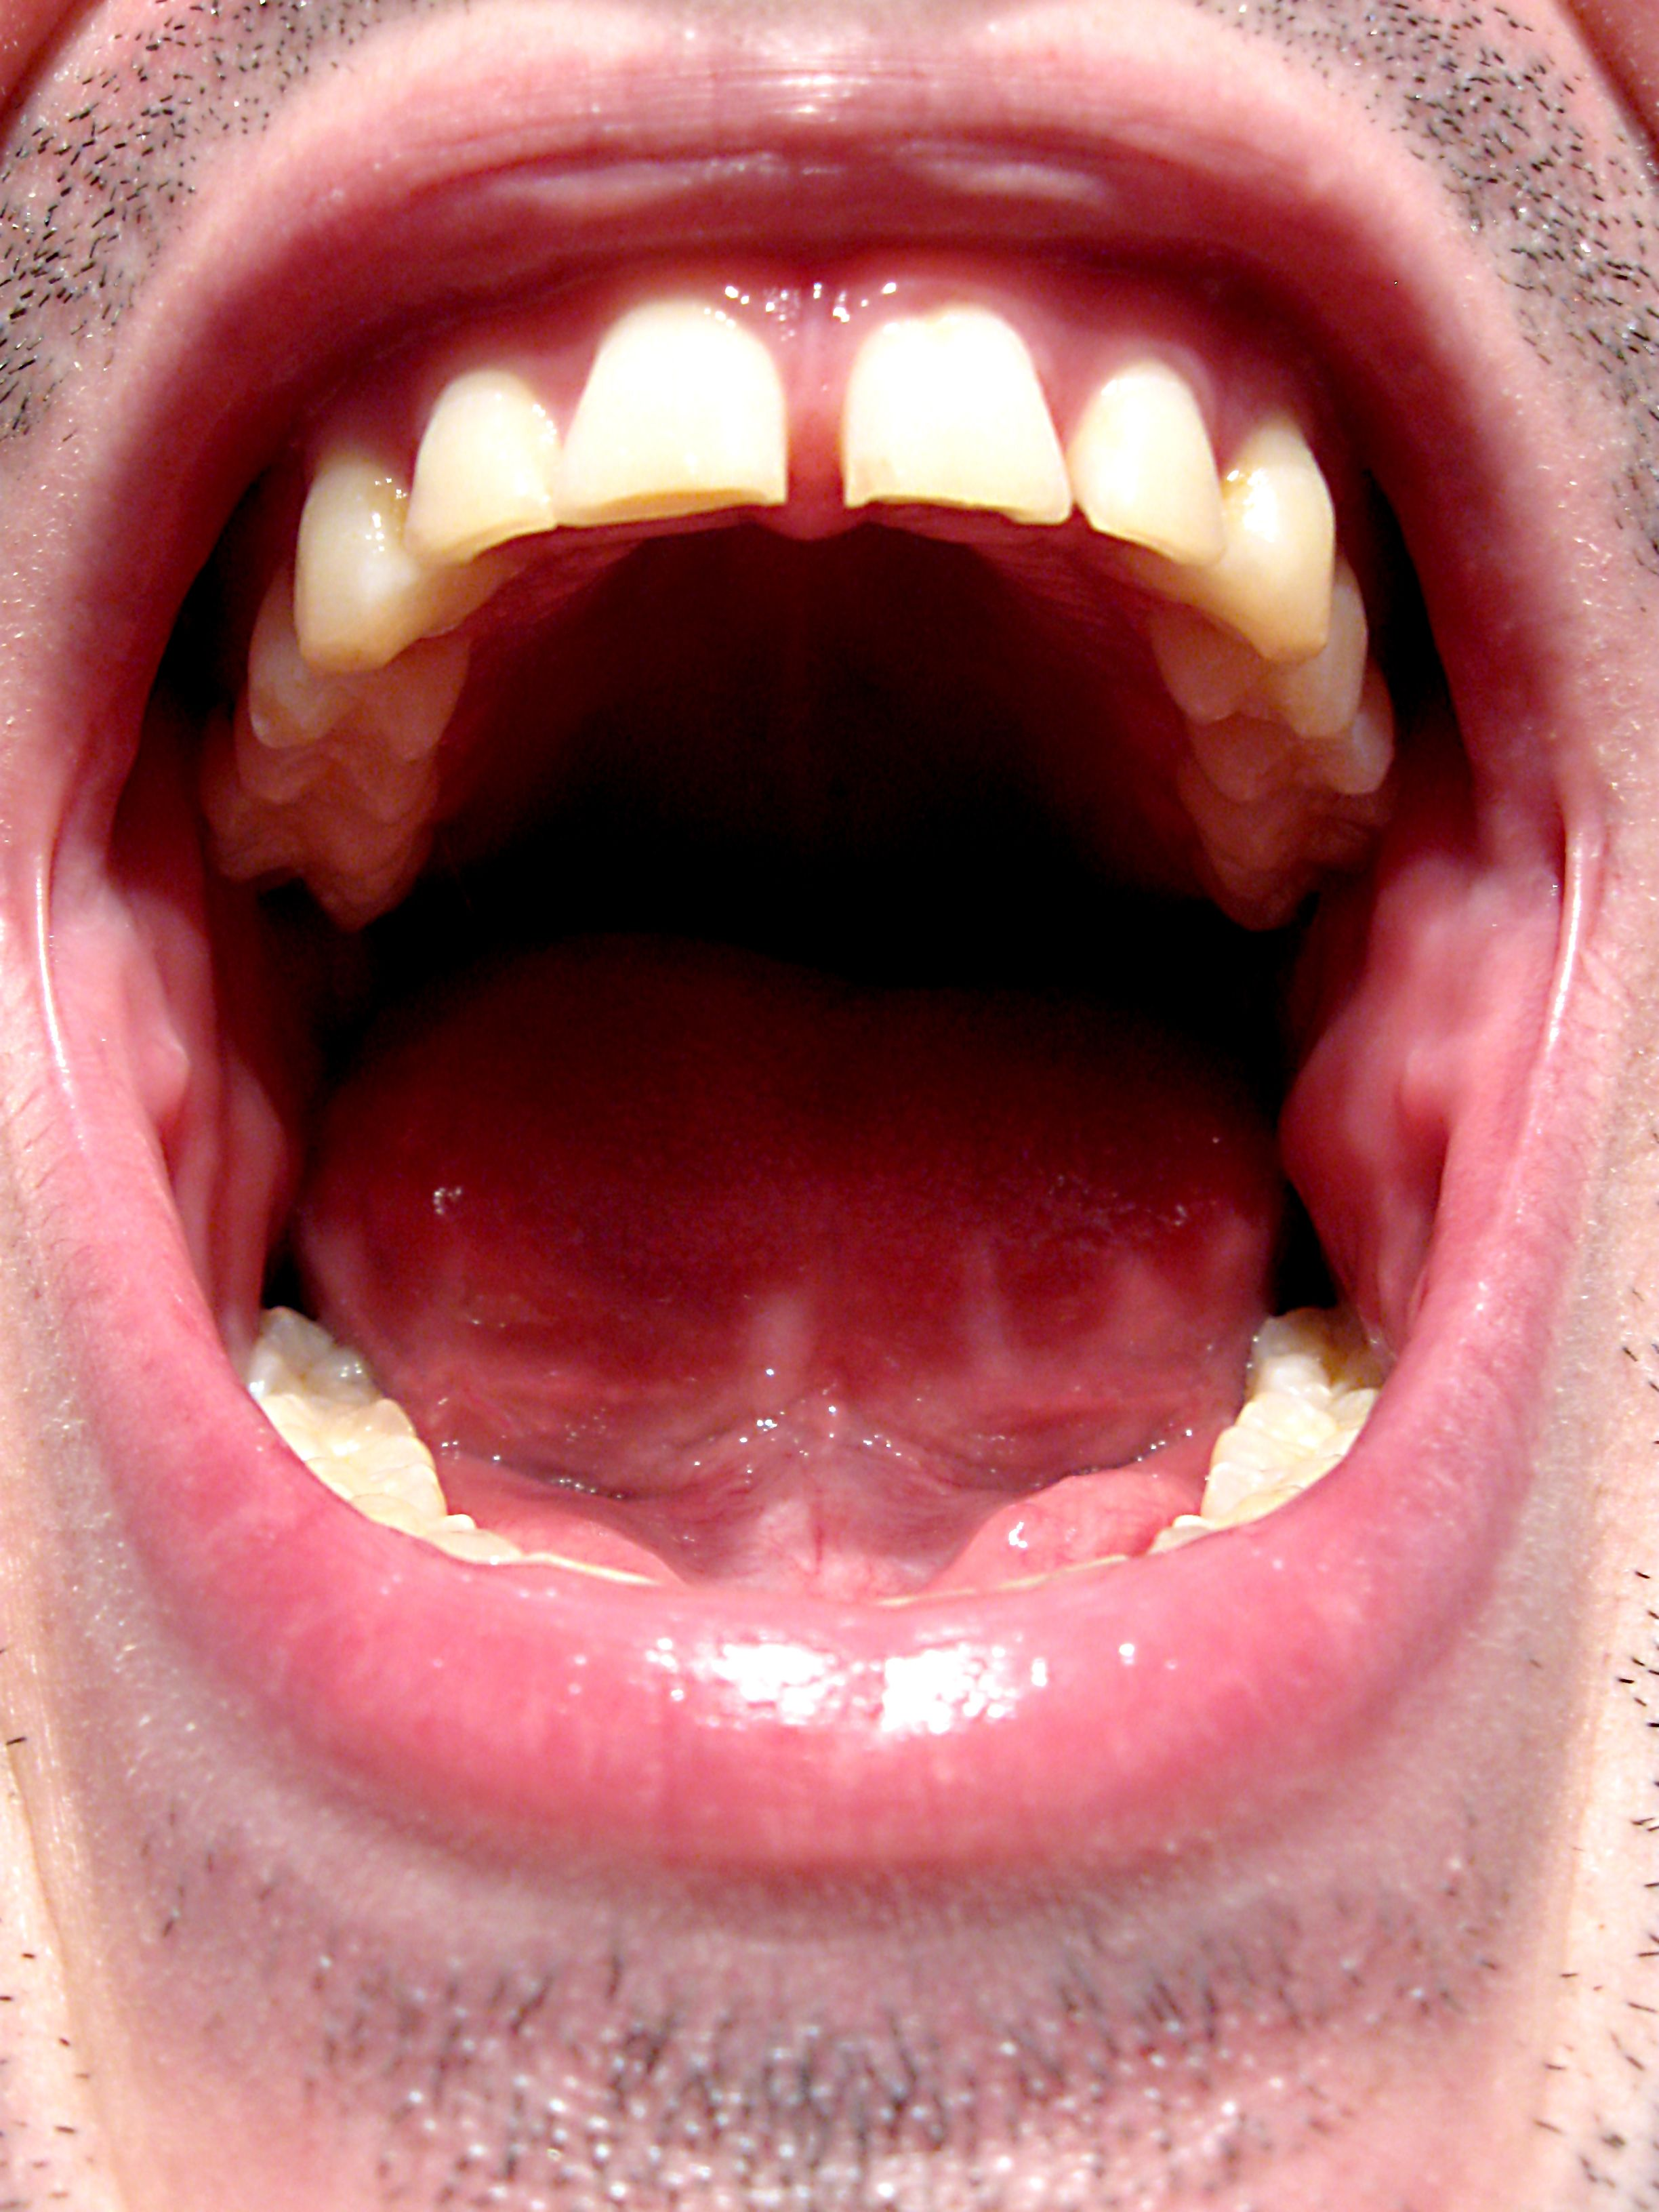 Going to bed without brushing your teeth is disgusting